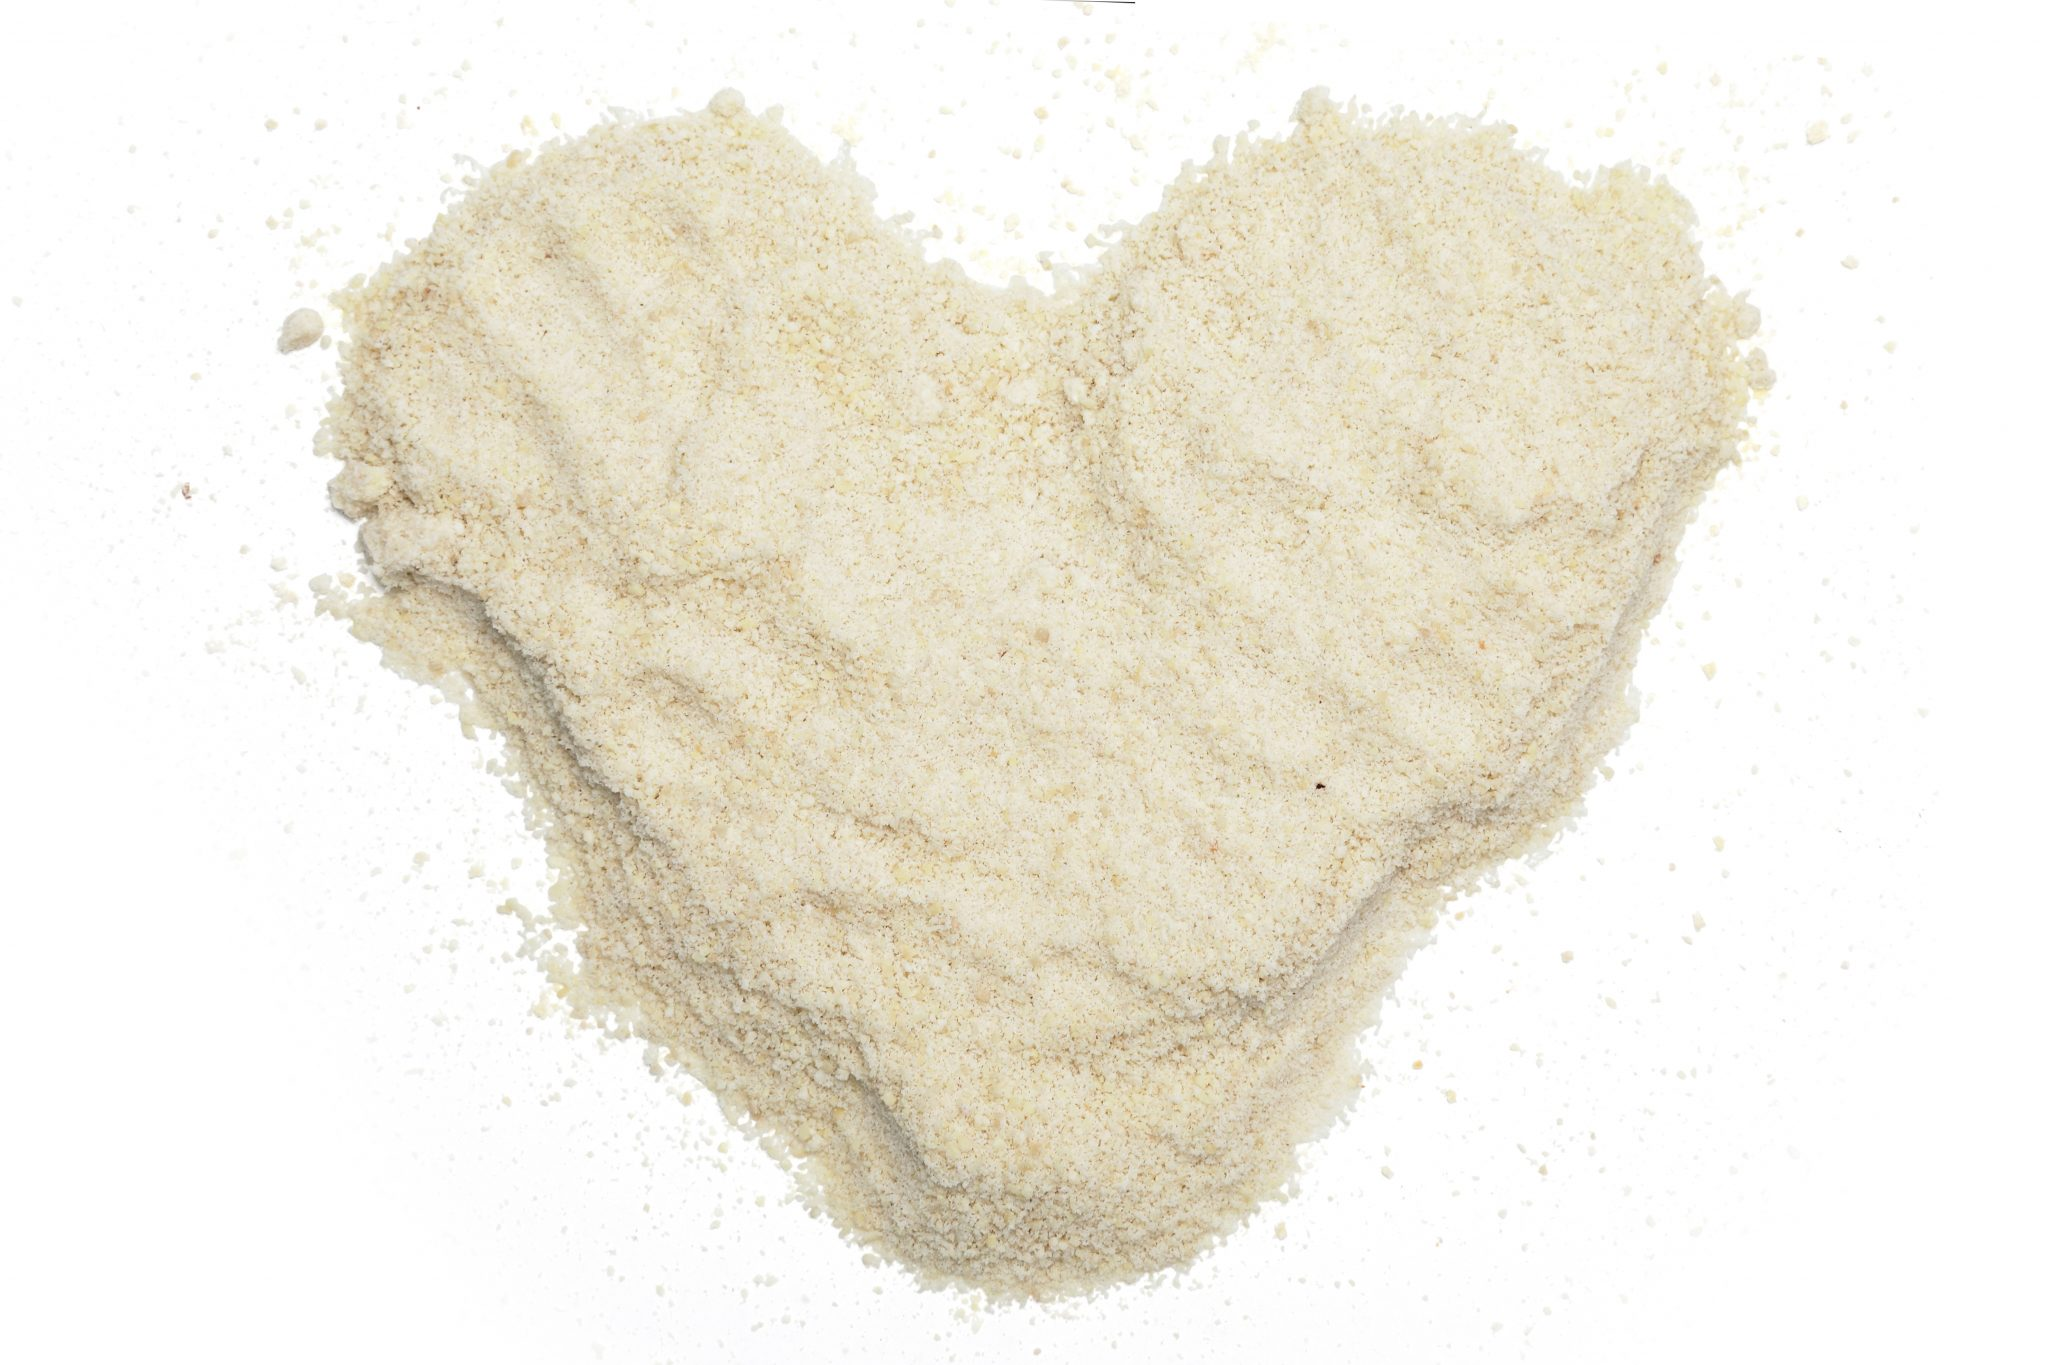 Chandras almond flour in a heart shape